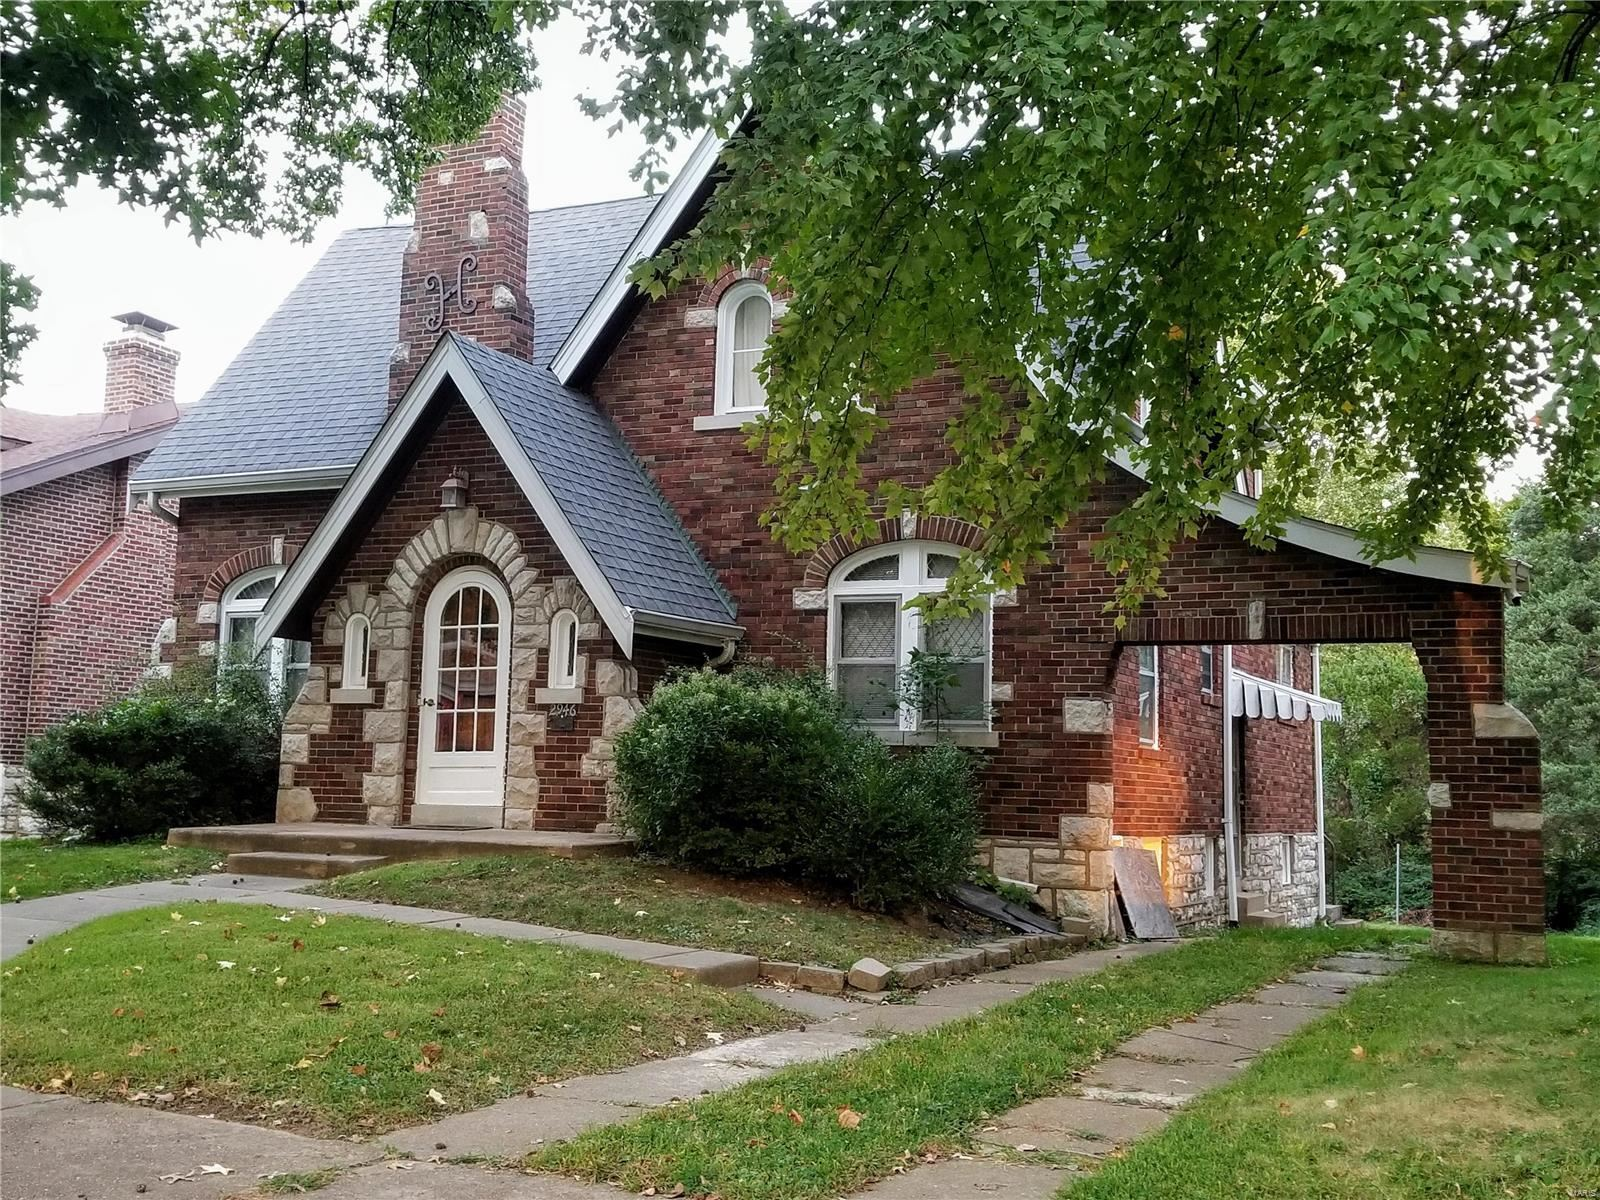 2946 Hatherly Drive, Bel Nor, MO 63121 - MLS#: 20002037